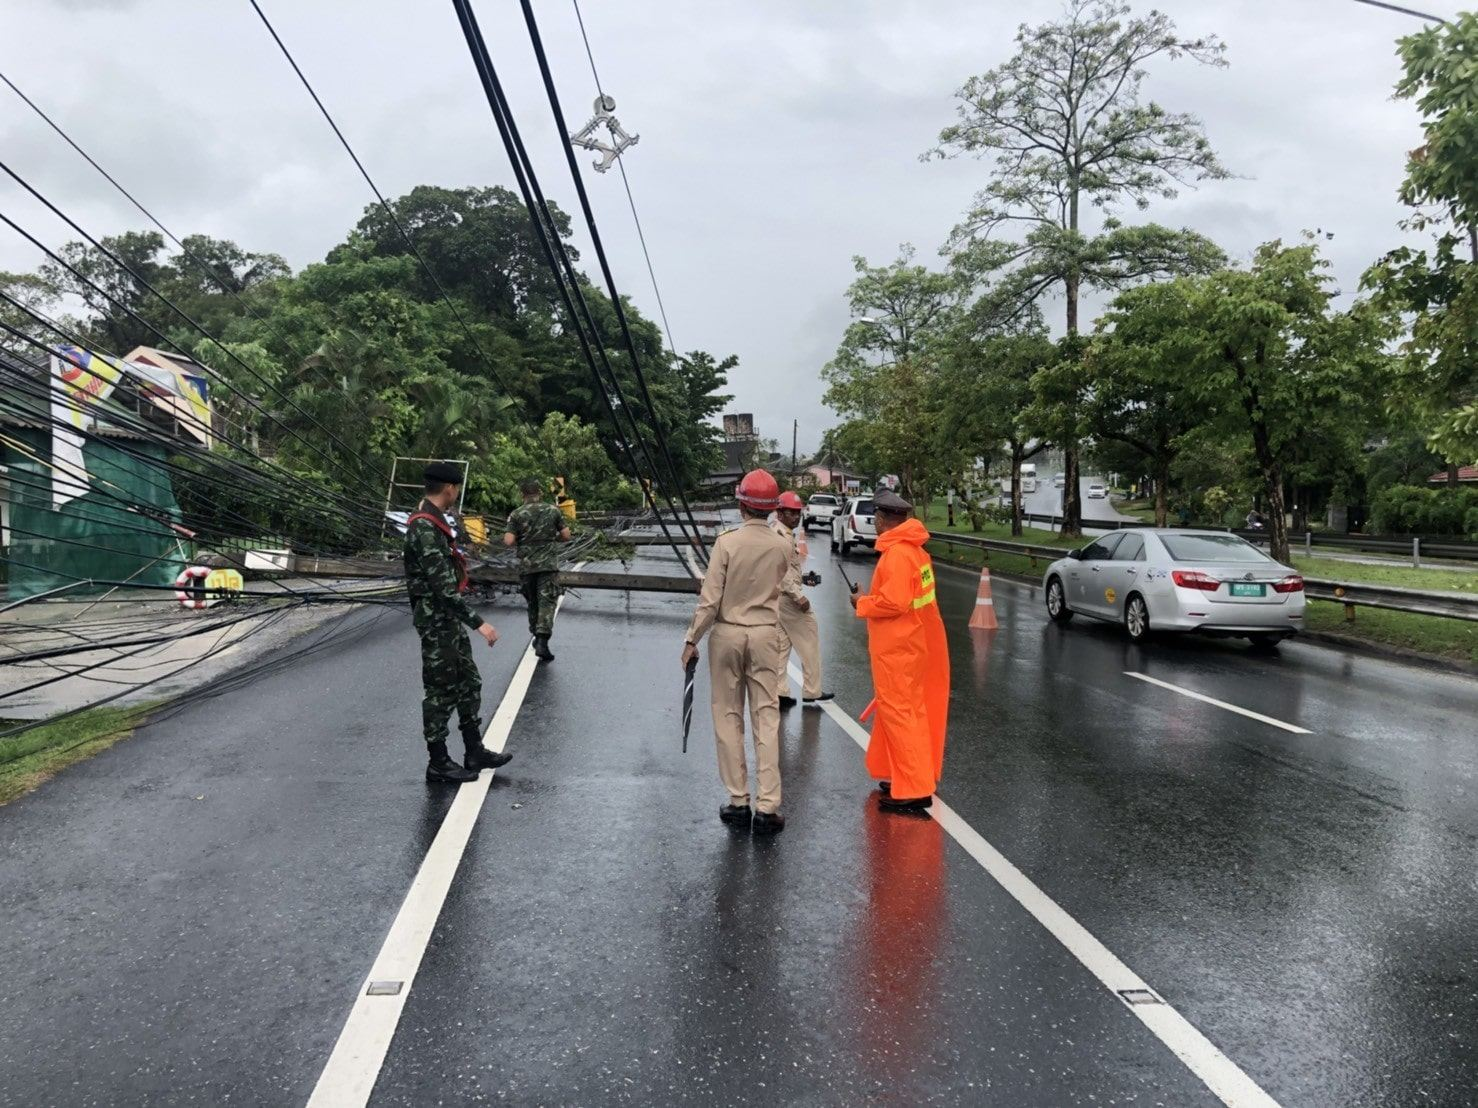 90 houses damaged, power cables down on main roads – Phuket storm | The Thaiger